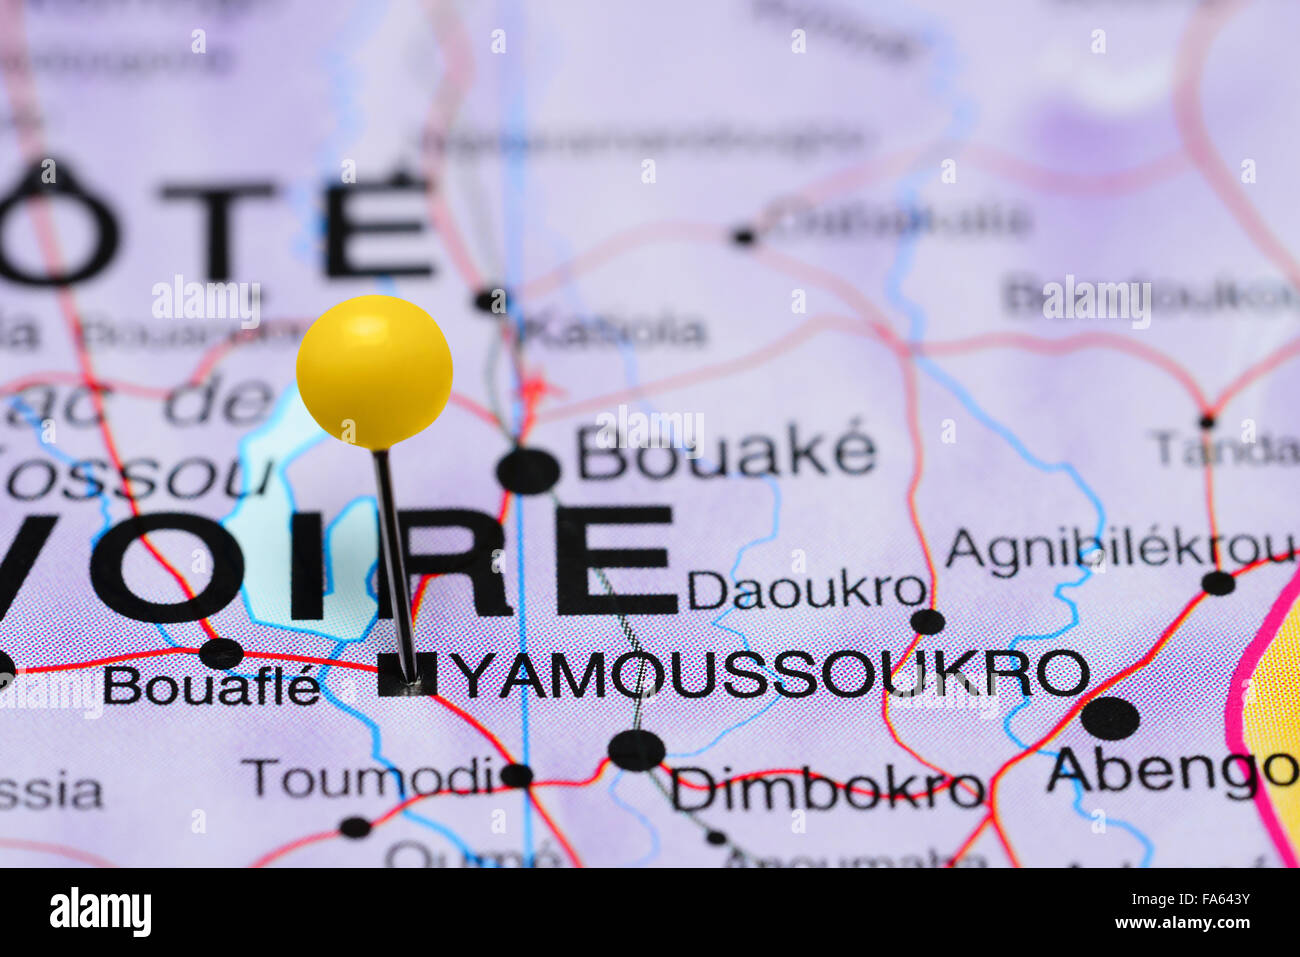 Picture of: Yamoussoukro Pinned On A Map Of Africa Stock Photo Alamy